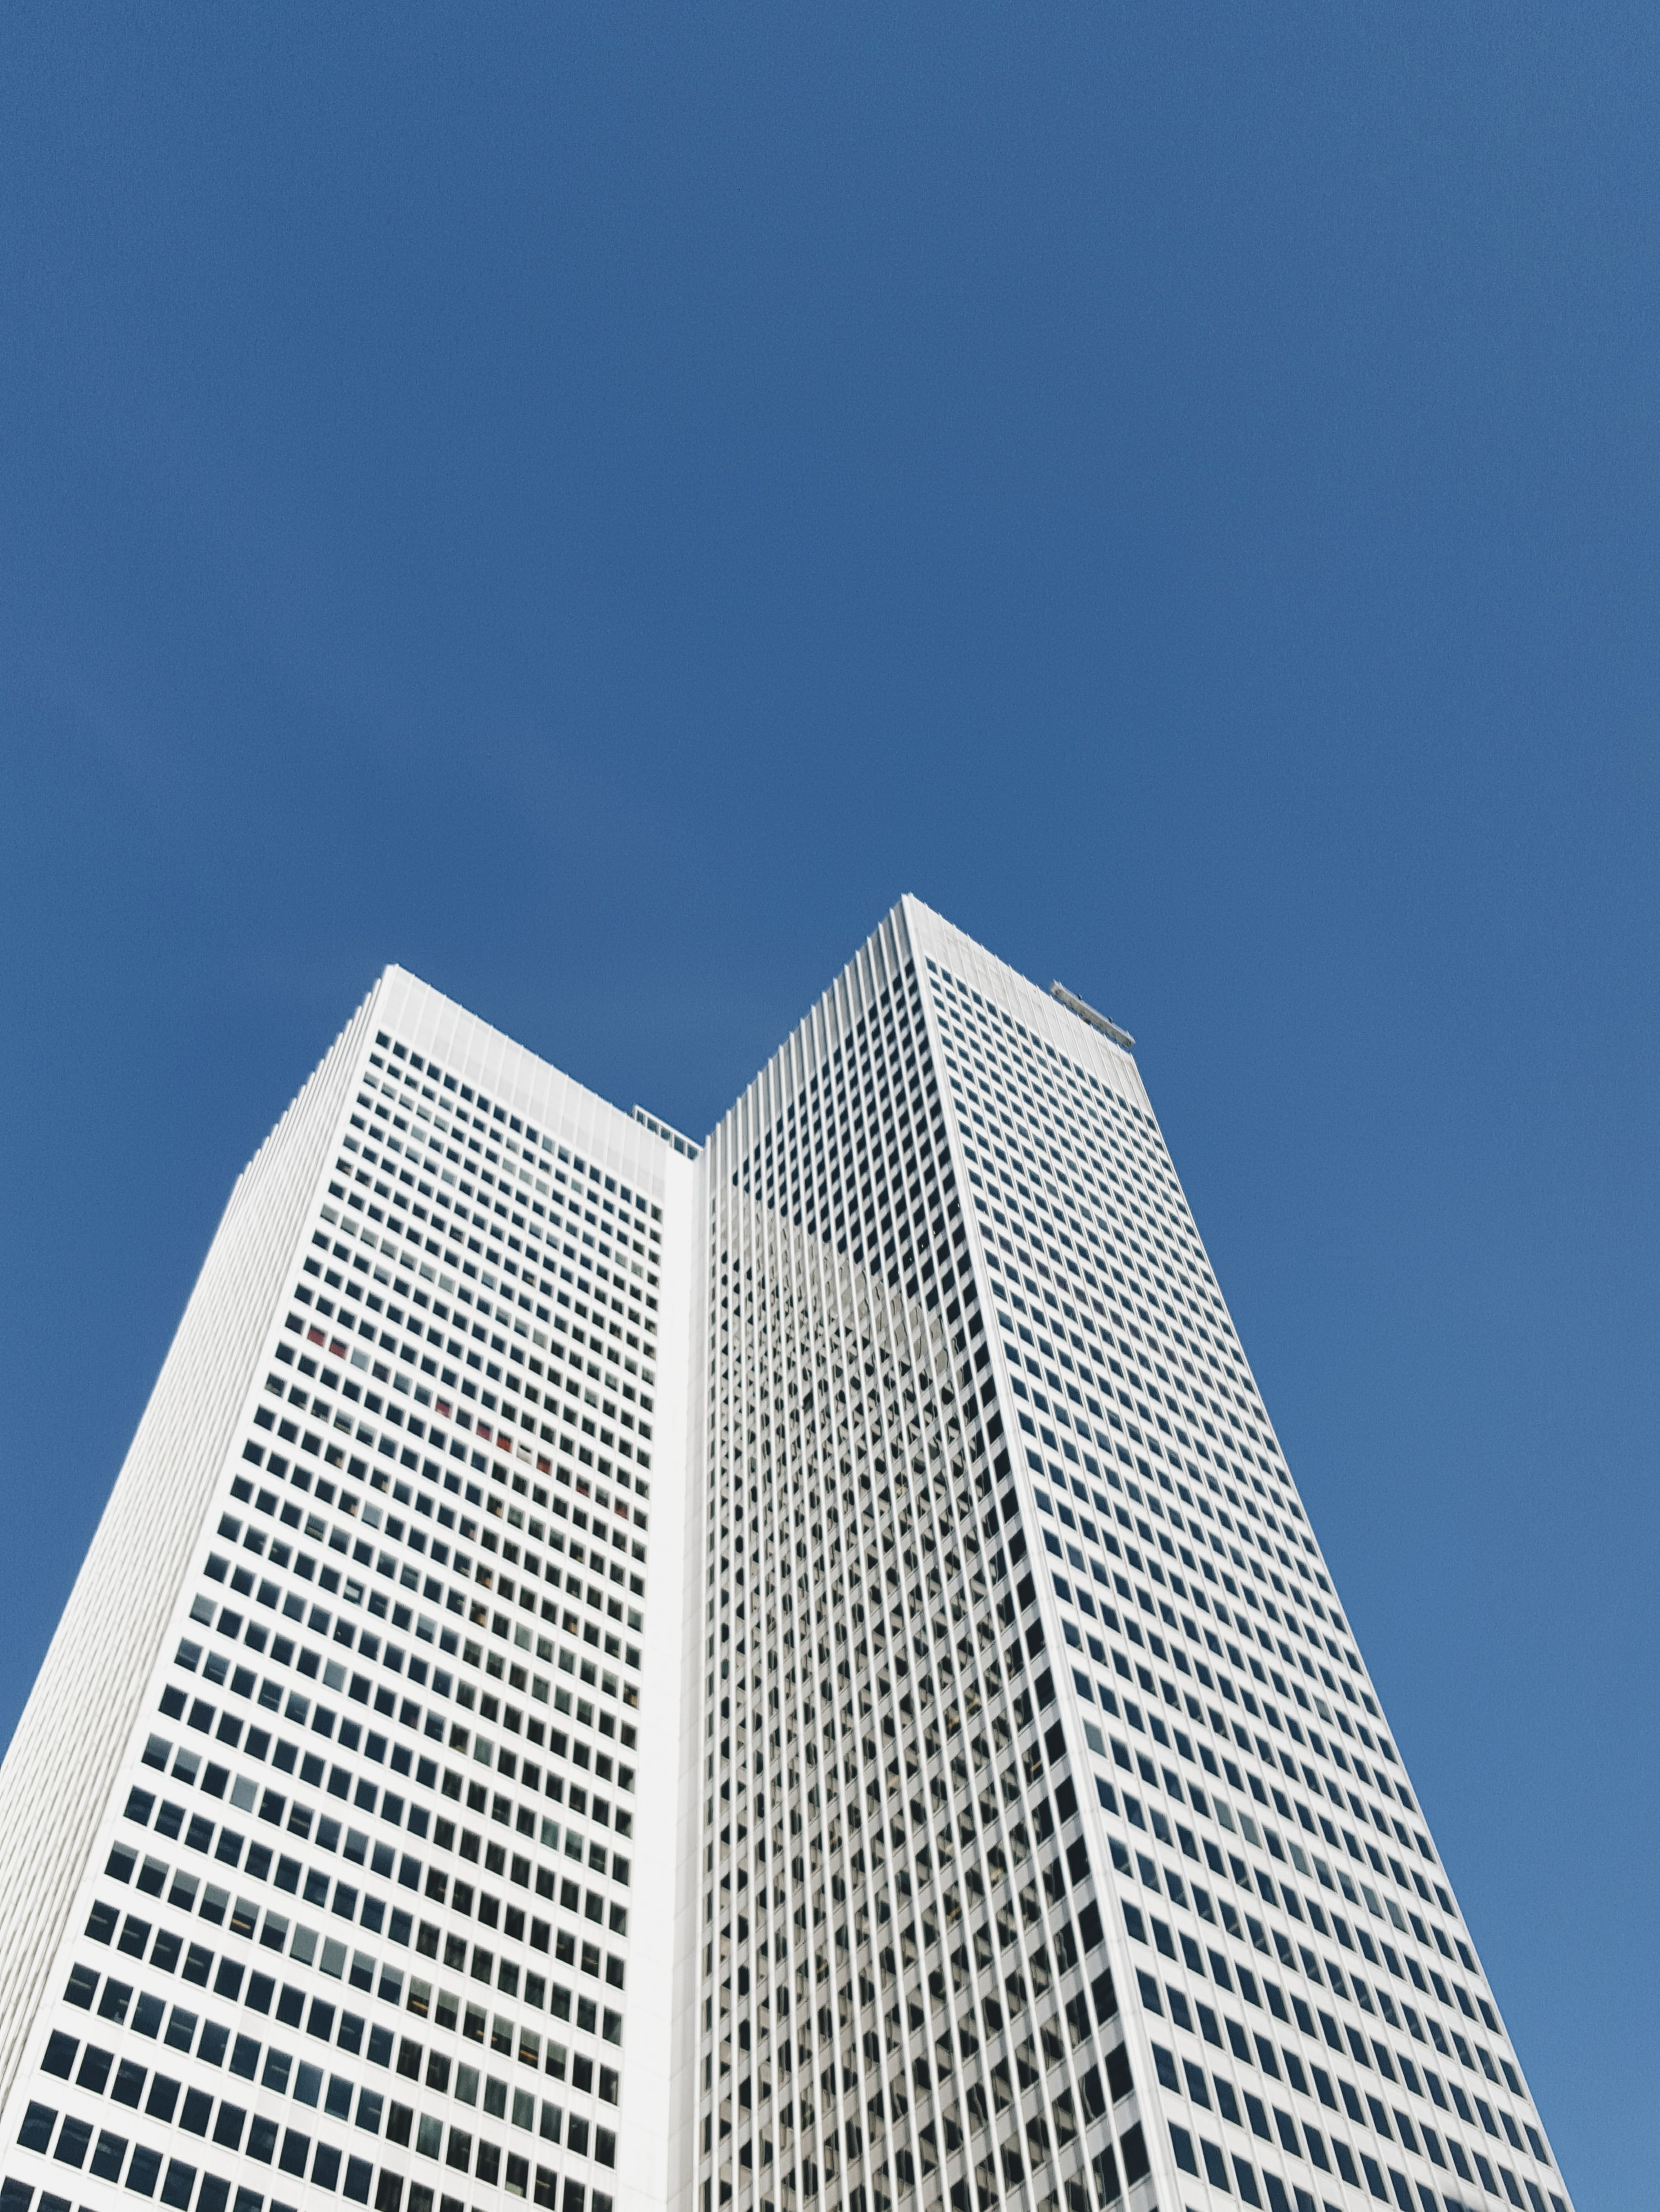 low-angle photography of high-rise building under calm blue sky